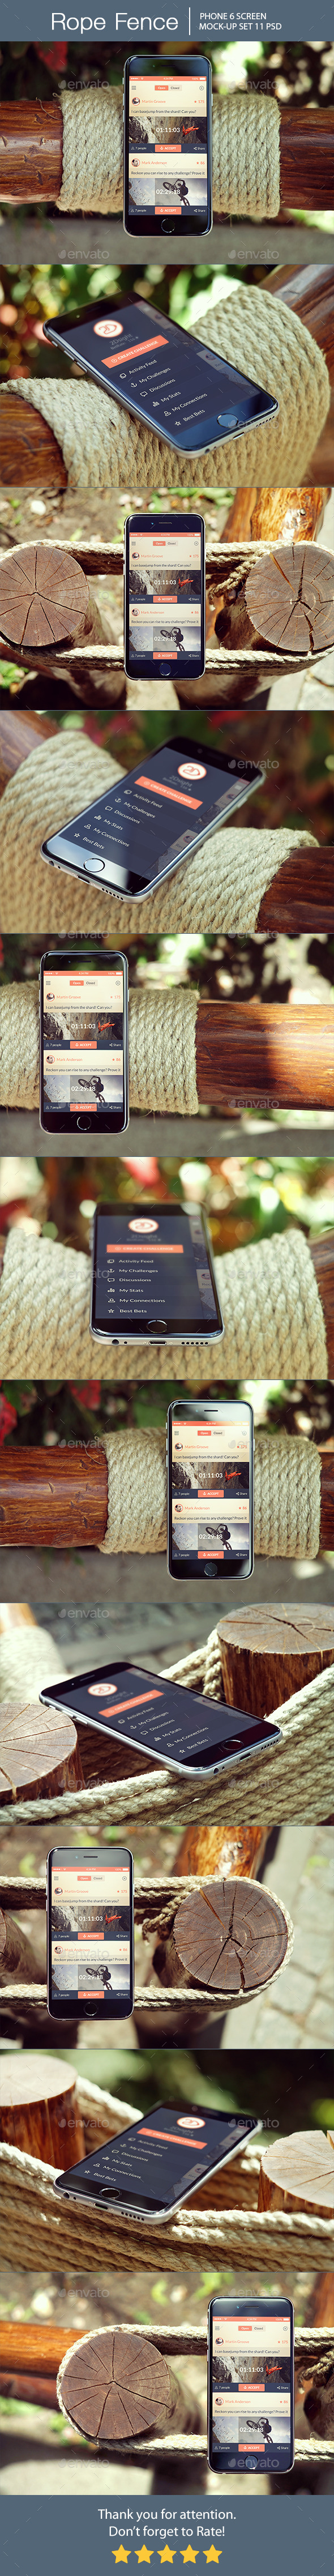 Rope Fence iPhone 6 Mockup - Mobile Displays